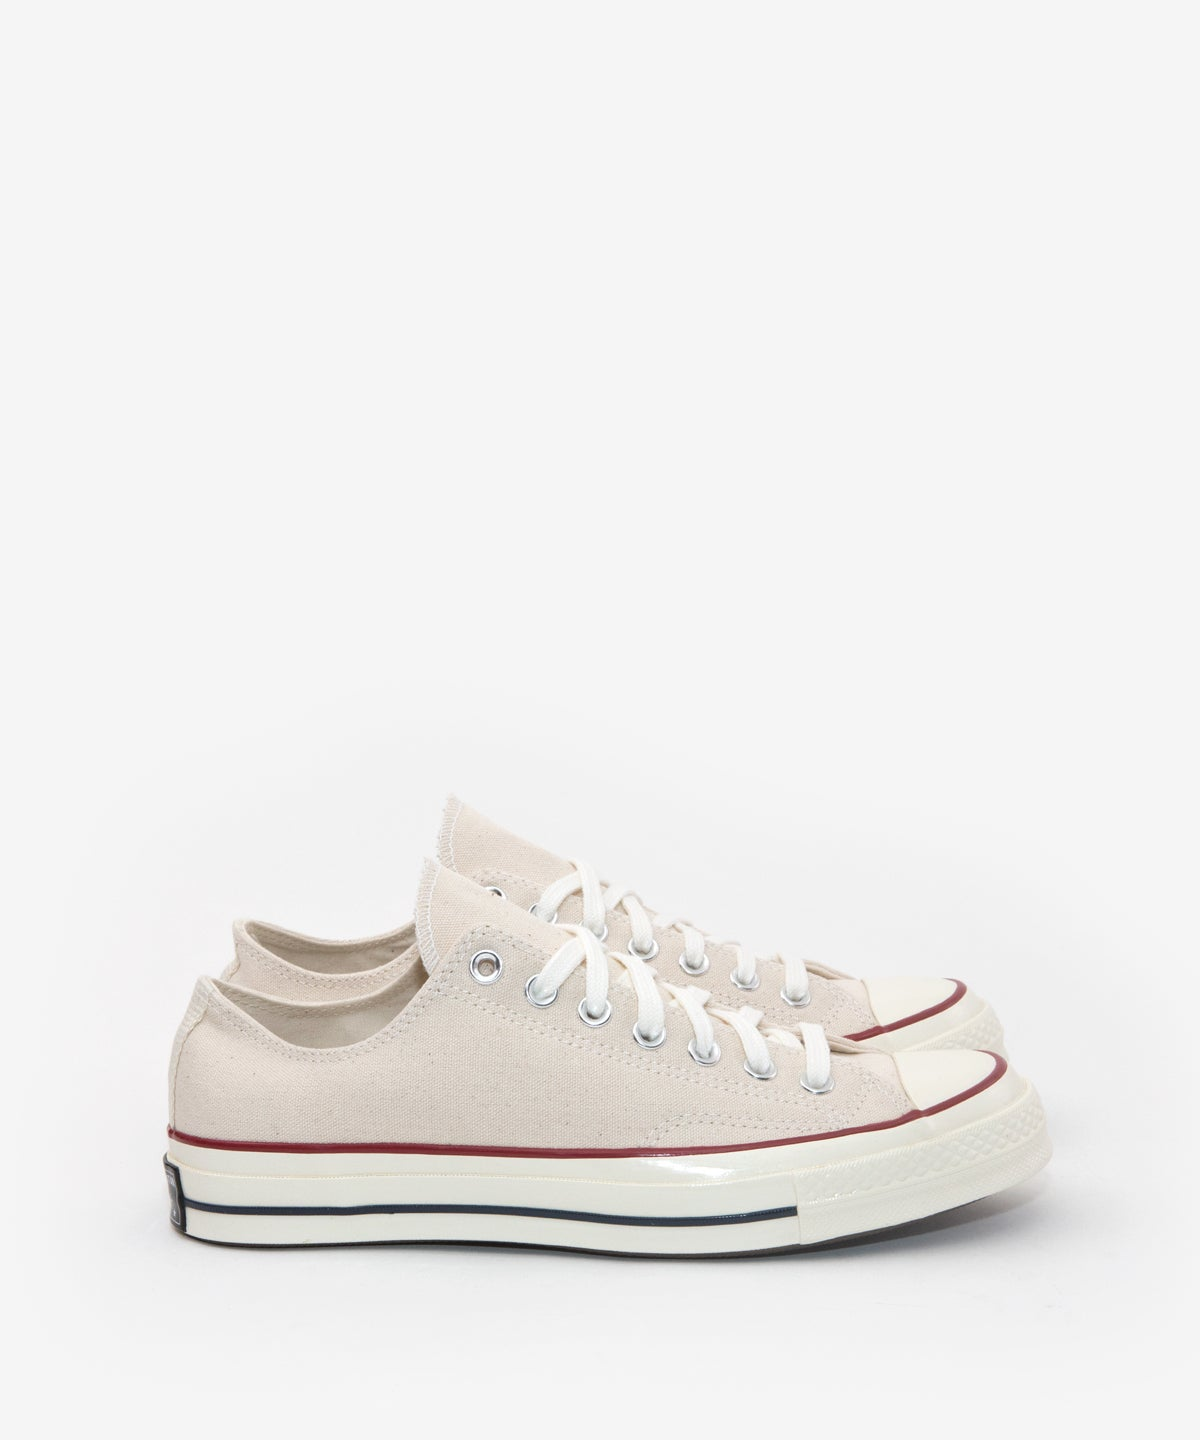 Image of CONVERSE_CHUCK TAYLOR 1970 LOW :::PARCHMENT:::